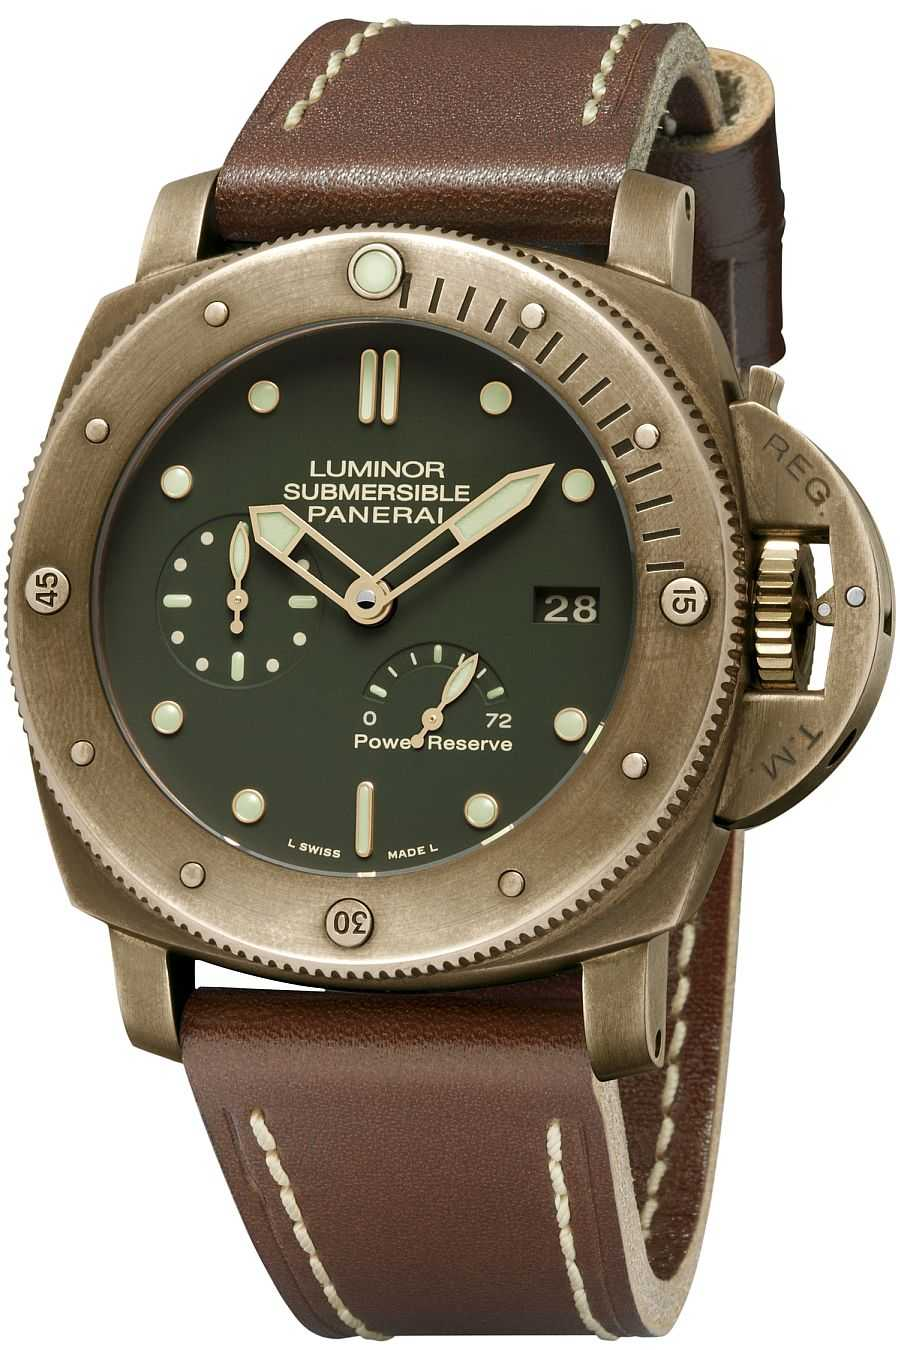 Panerai Submersible 1950 3 Days Power Reserve Automatic Bronzo